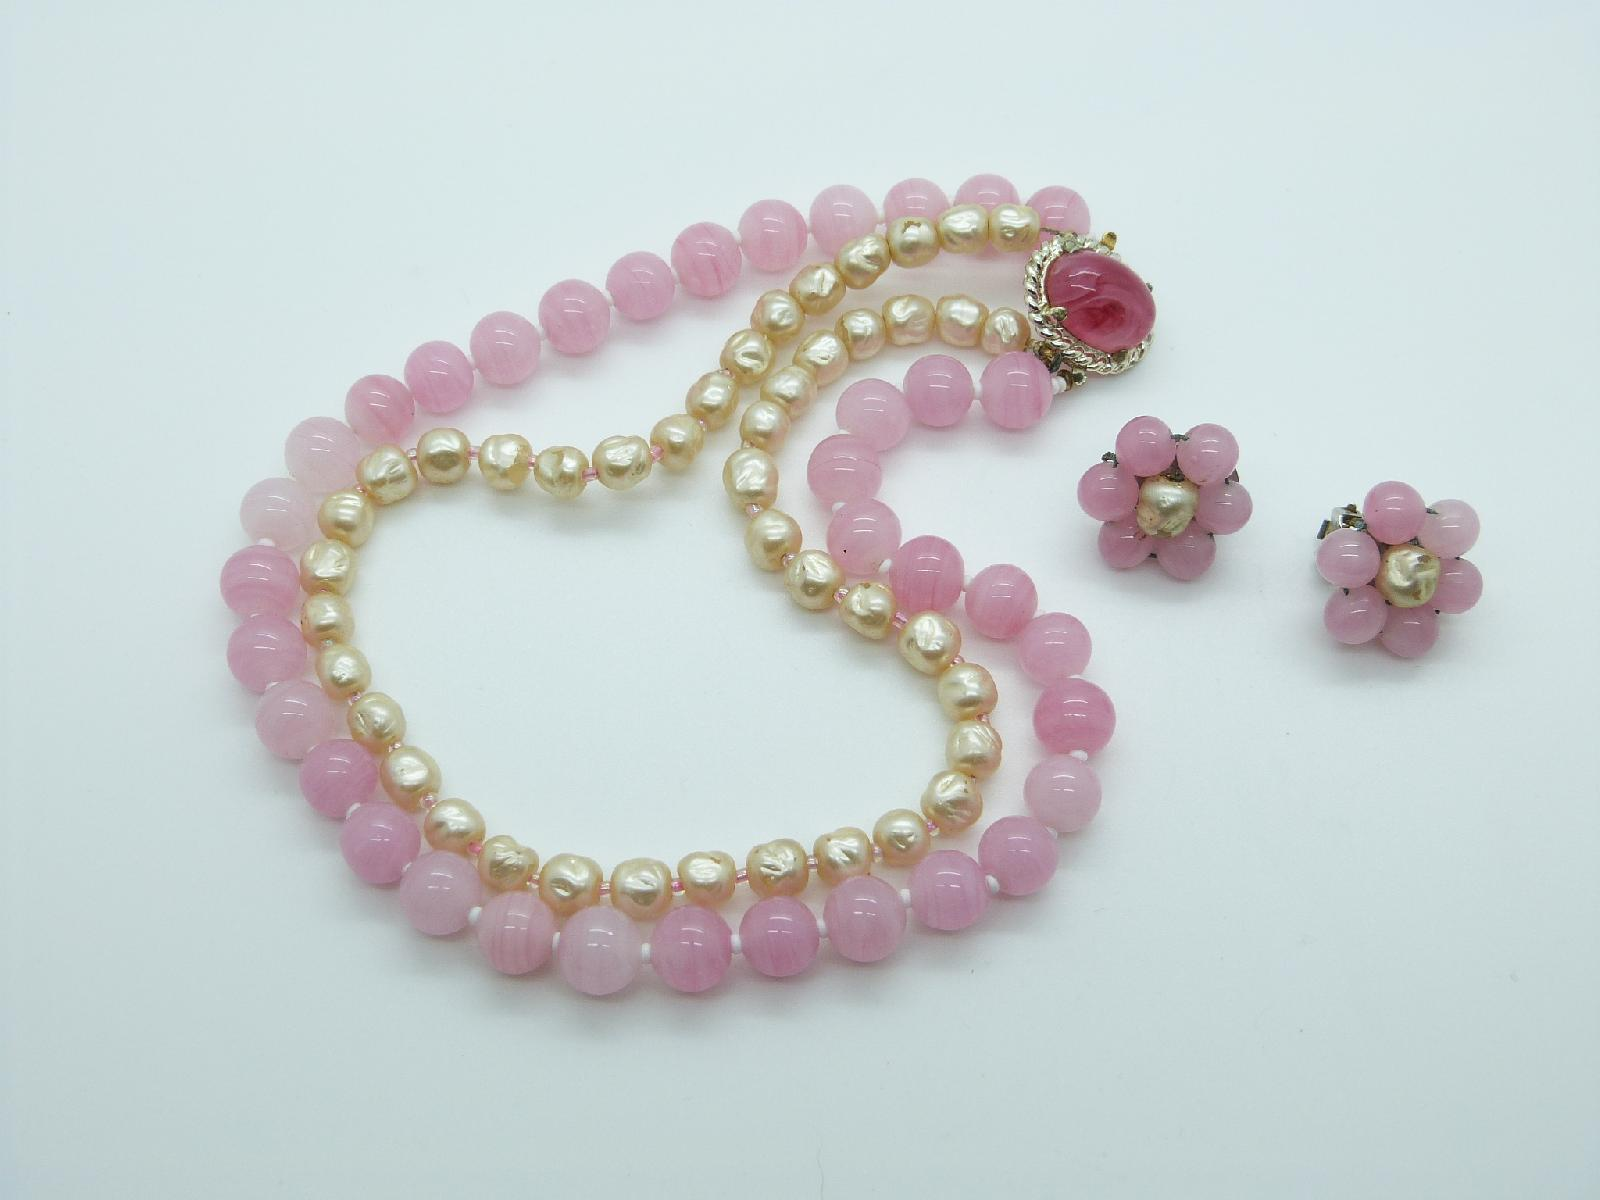 £42.00 - Vintage 50s Two Row Pink Glass and  Faux Pearl Bead Necklace and Earrings